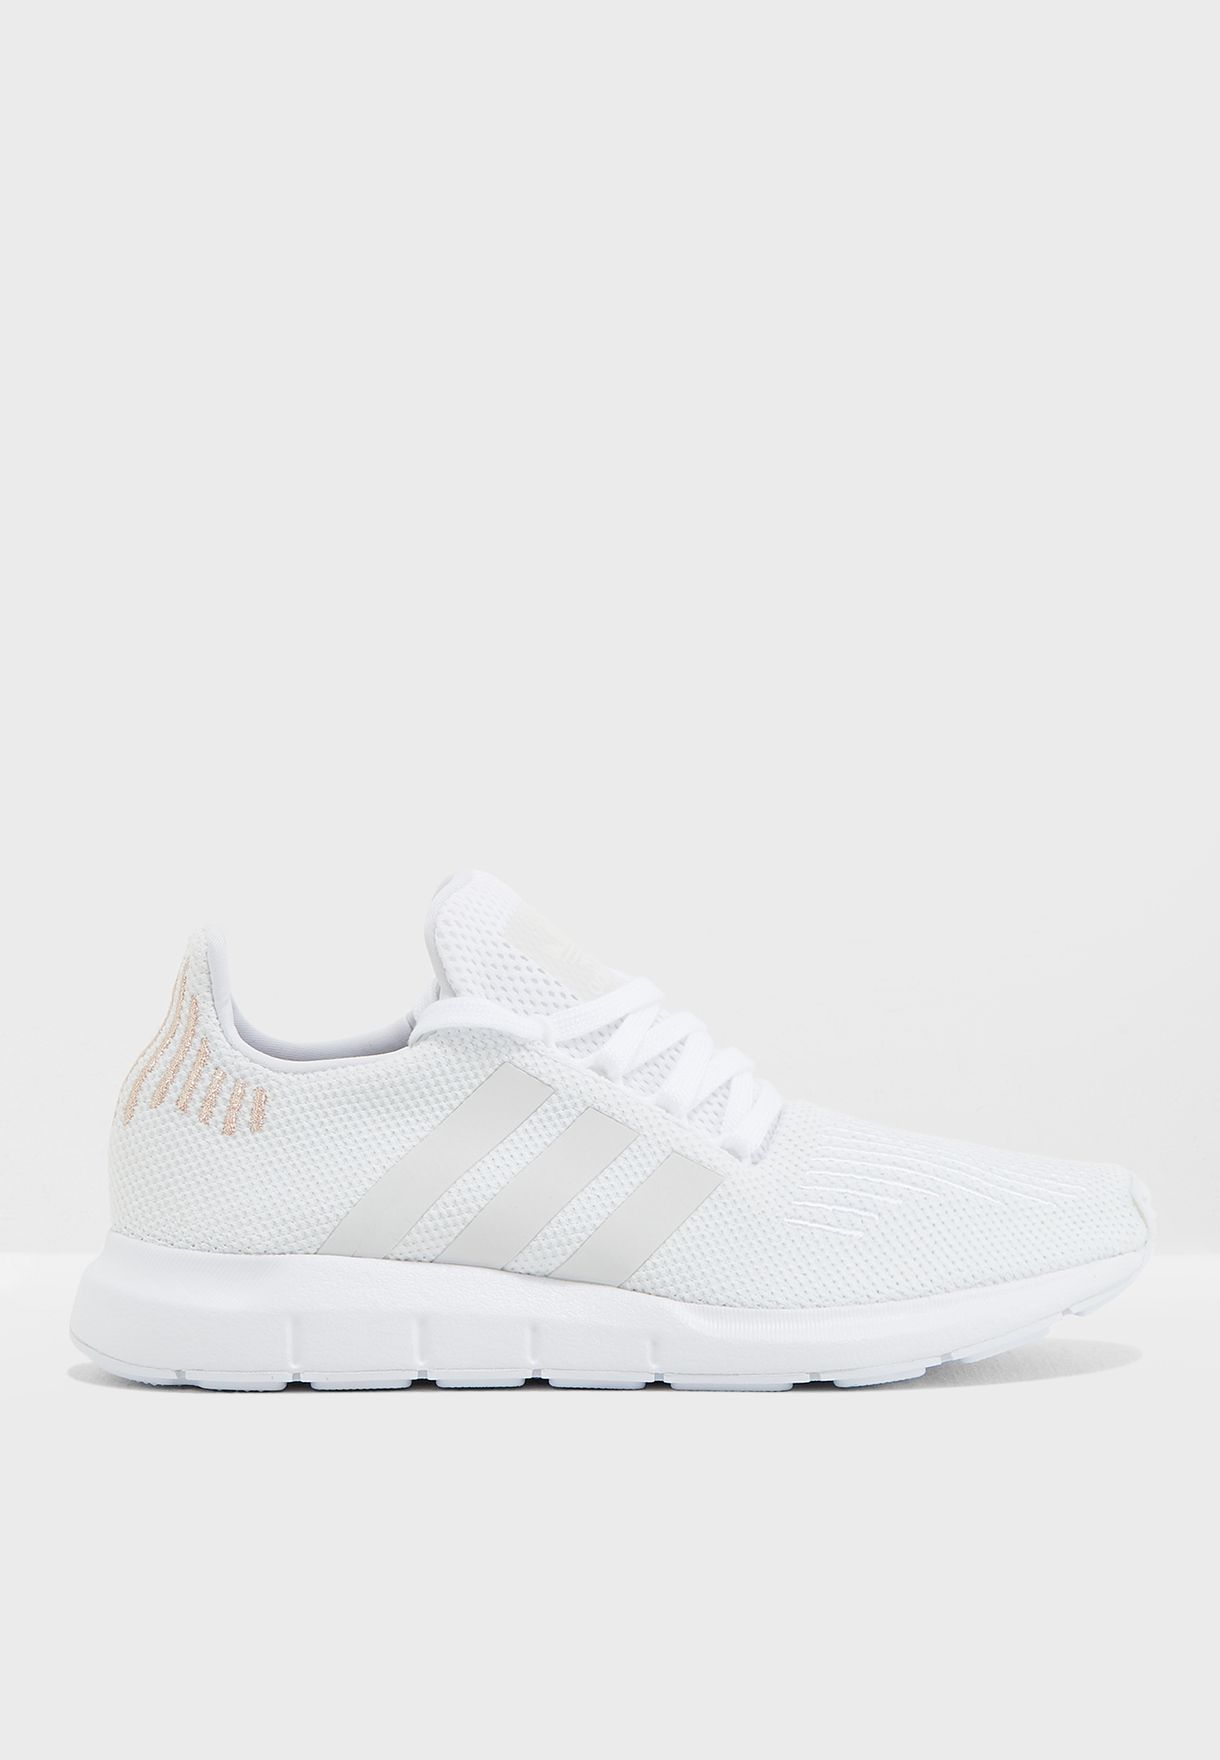 Shop adidas Originals white Swift Run B37719 for Women in UAE ... ad049b9f4